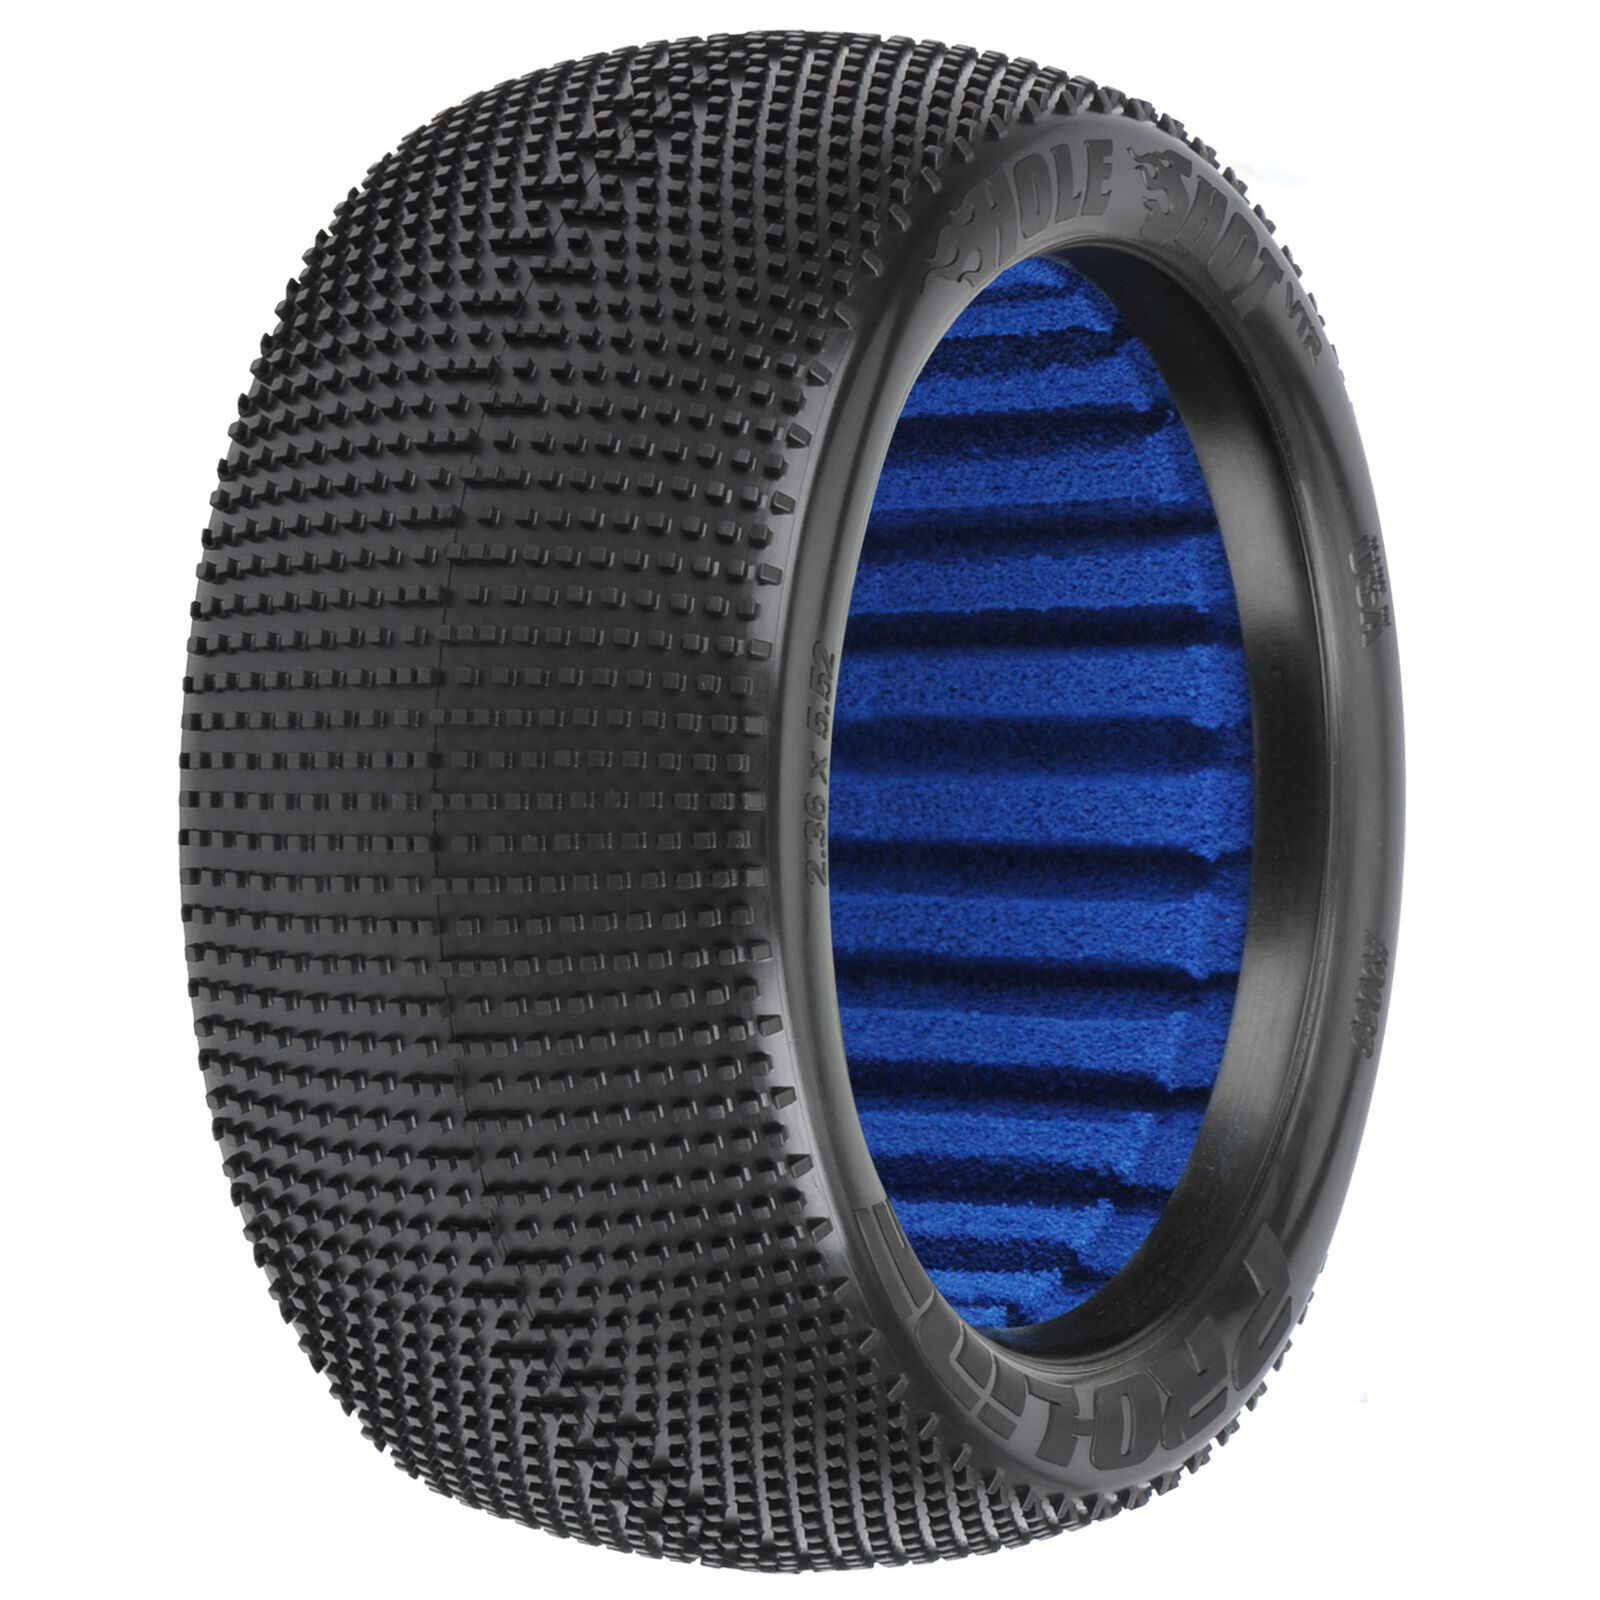 """1/8 Hole Shot M3 Front/Rear 4.0"""" Off-Road Truggy Tires (2)"""